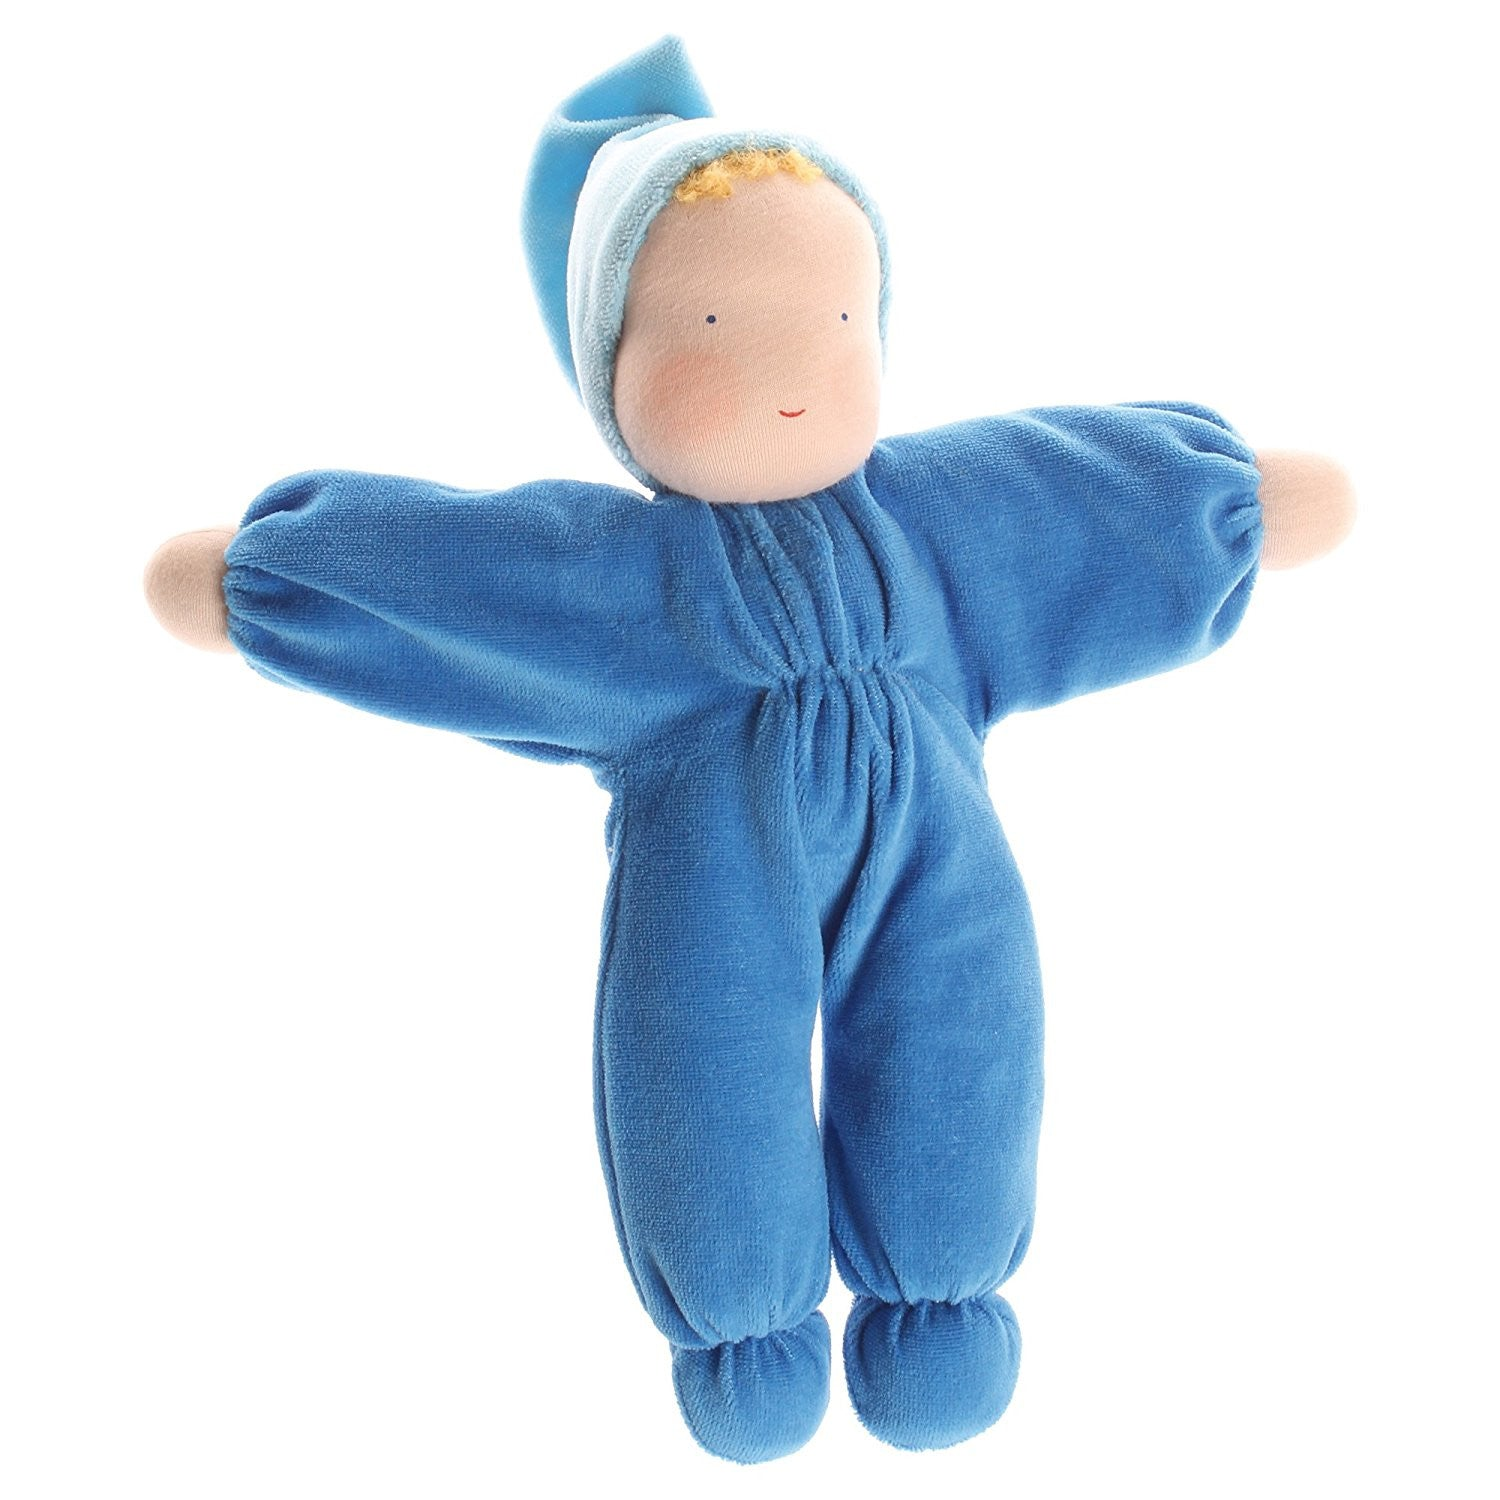 Soft Blue Waldorf Doll by Grimm